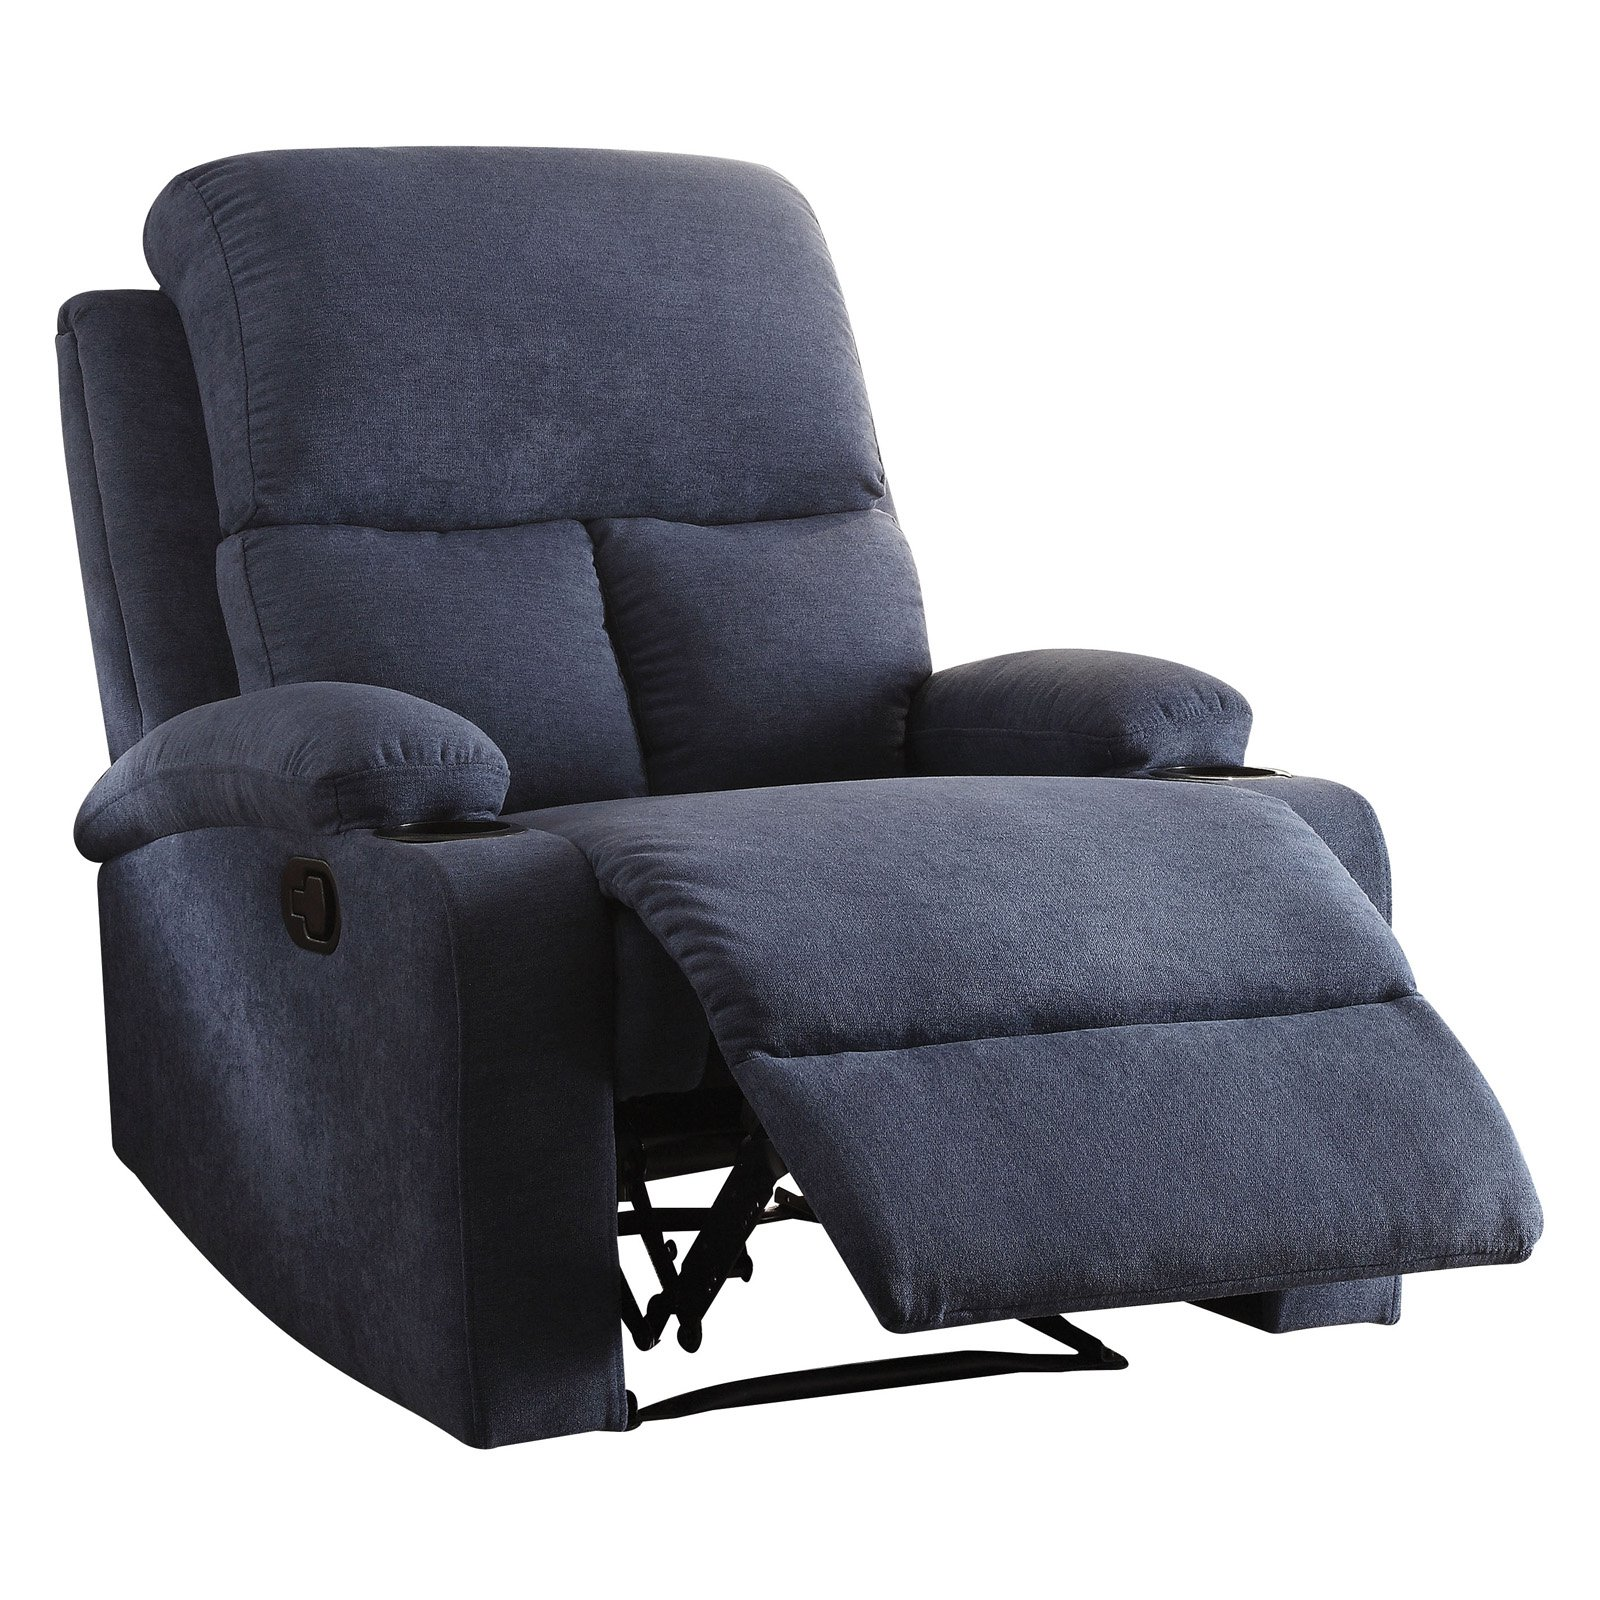 ACME Rosia Velvet Recliner with Cup Holder, Multiple Colors